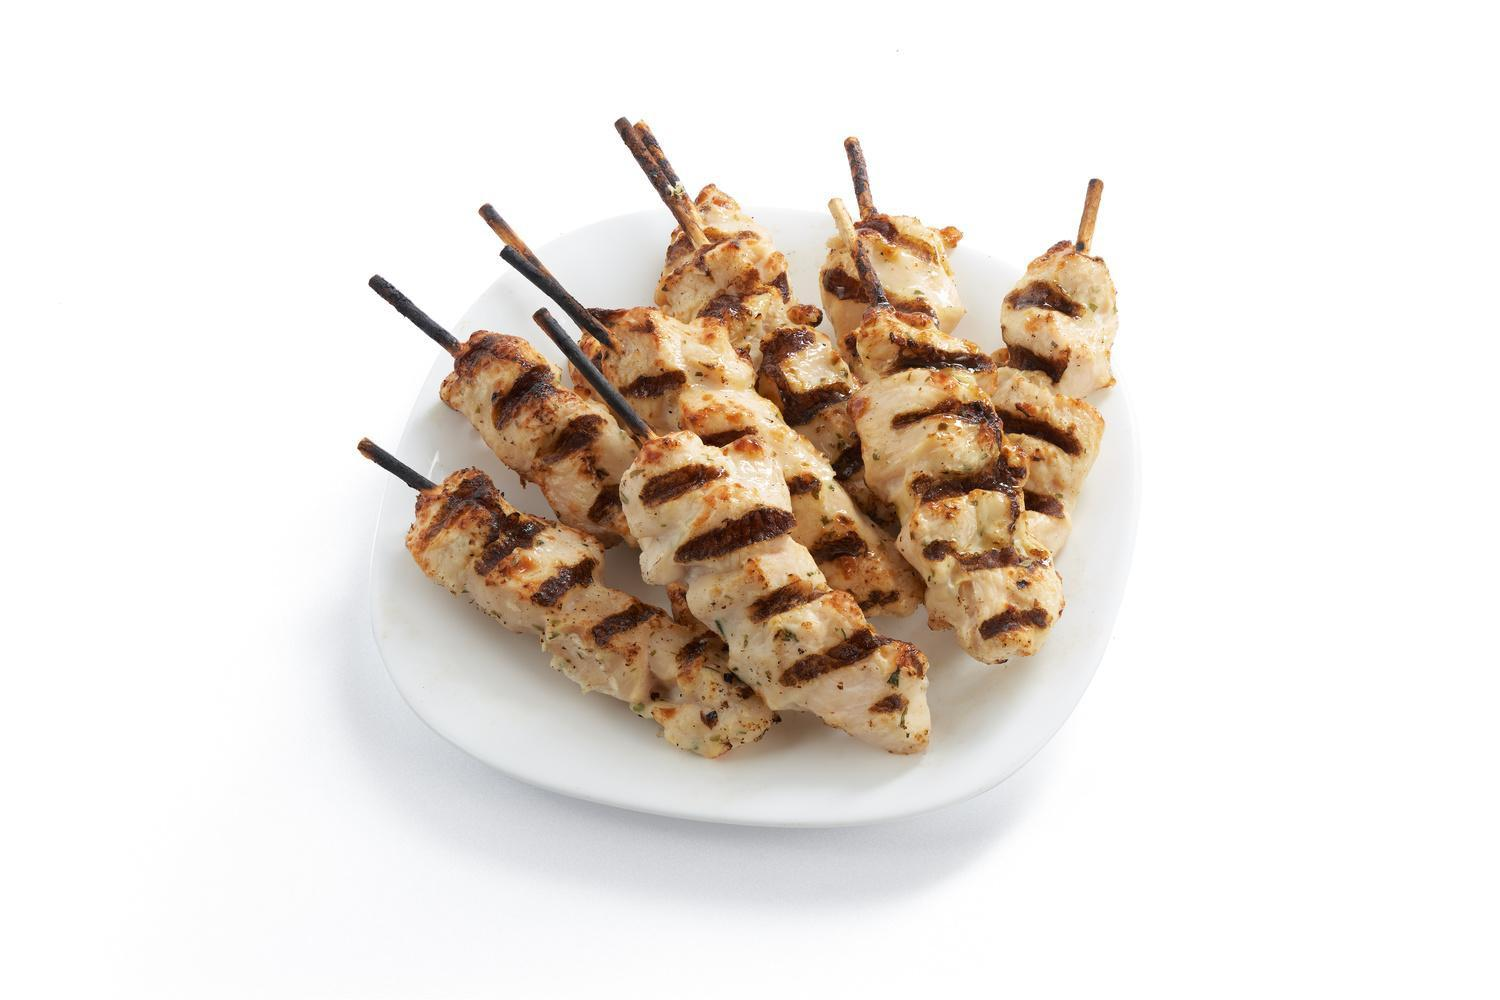 Image of Fully Cooked Chicken Breast Skewers